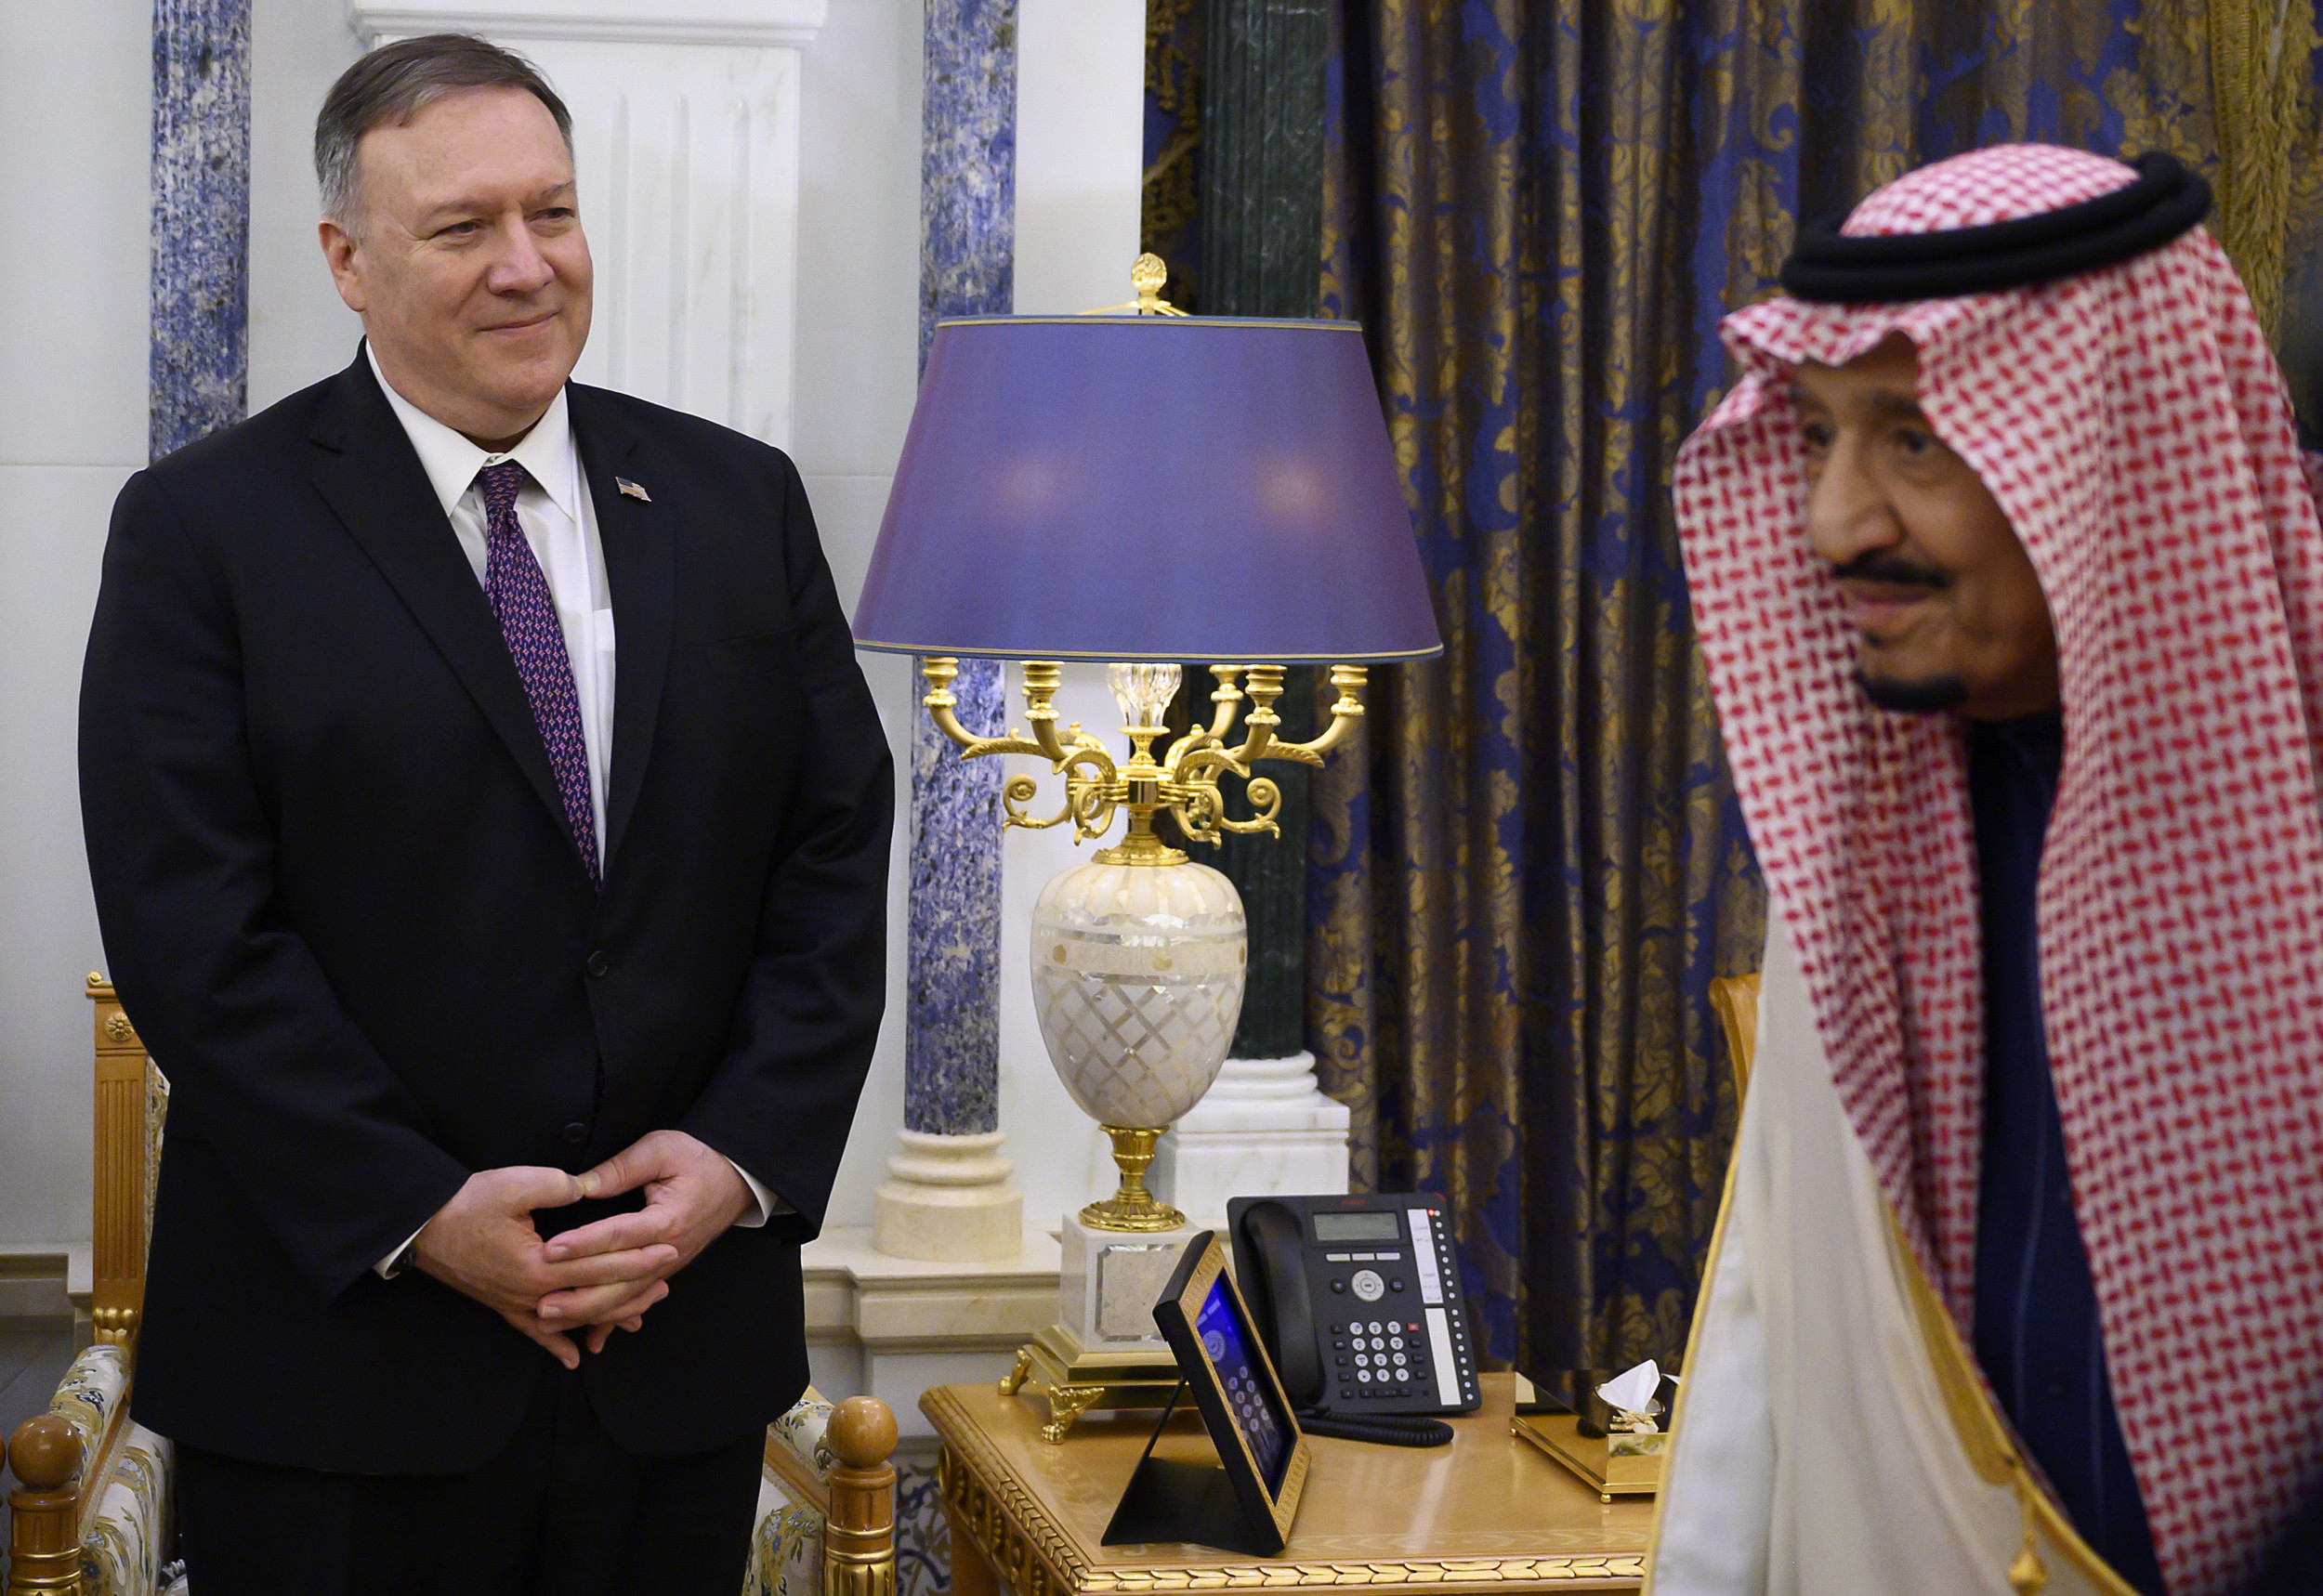 Pompeo in Saudi Arabia for visit focused on Iranian threats